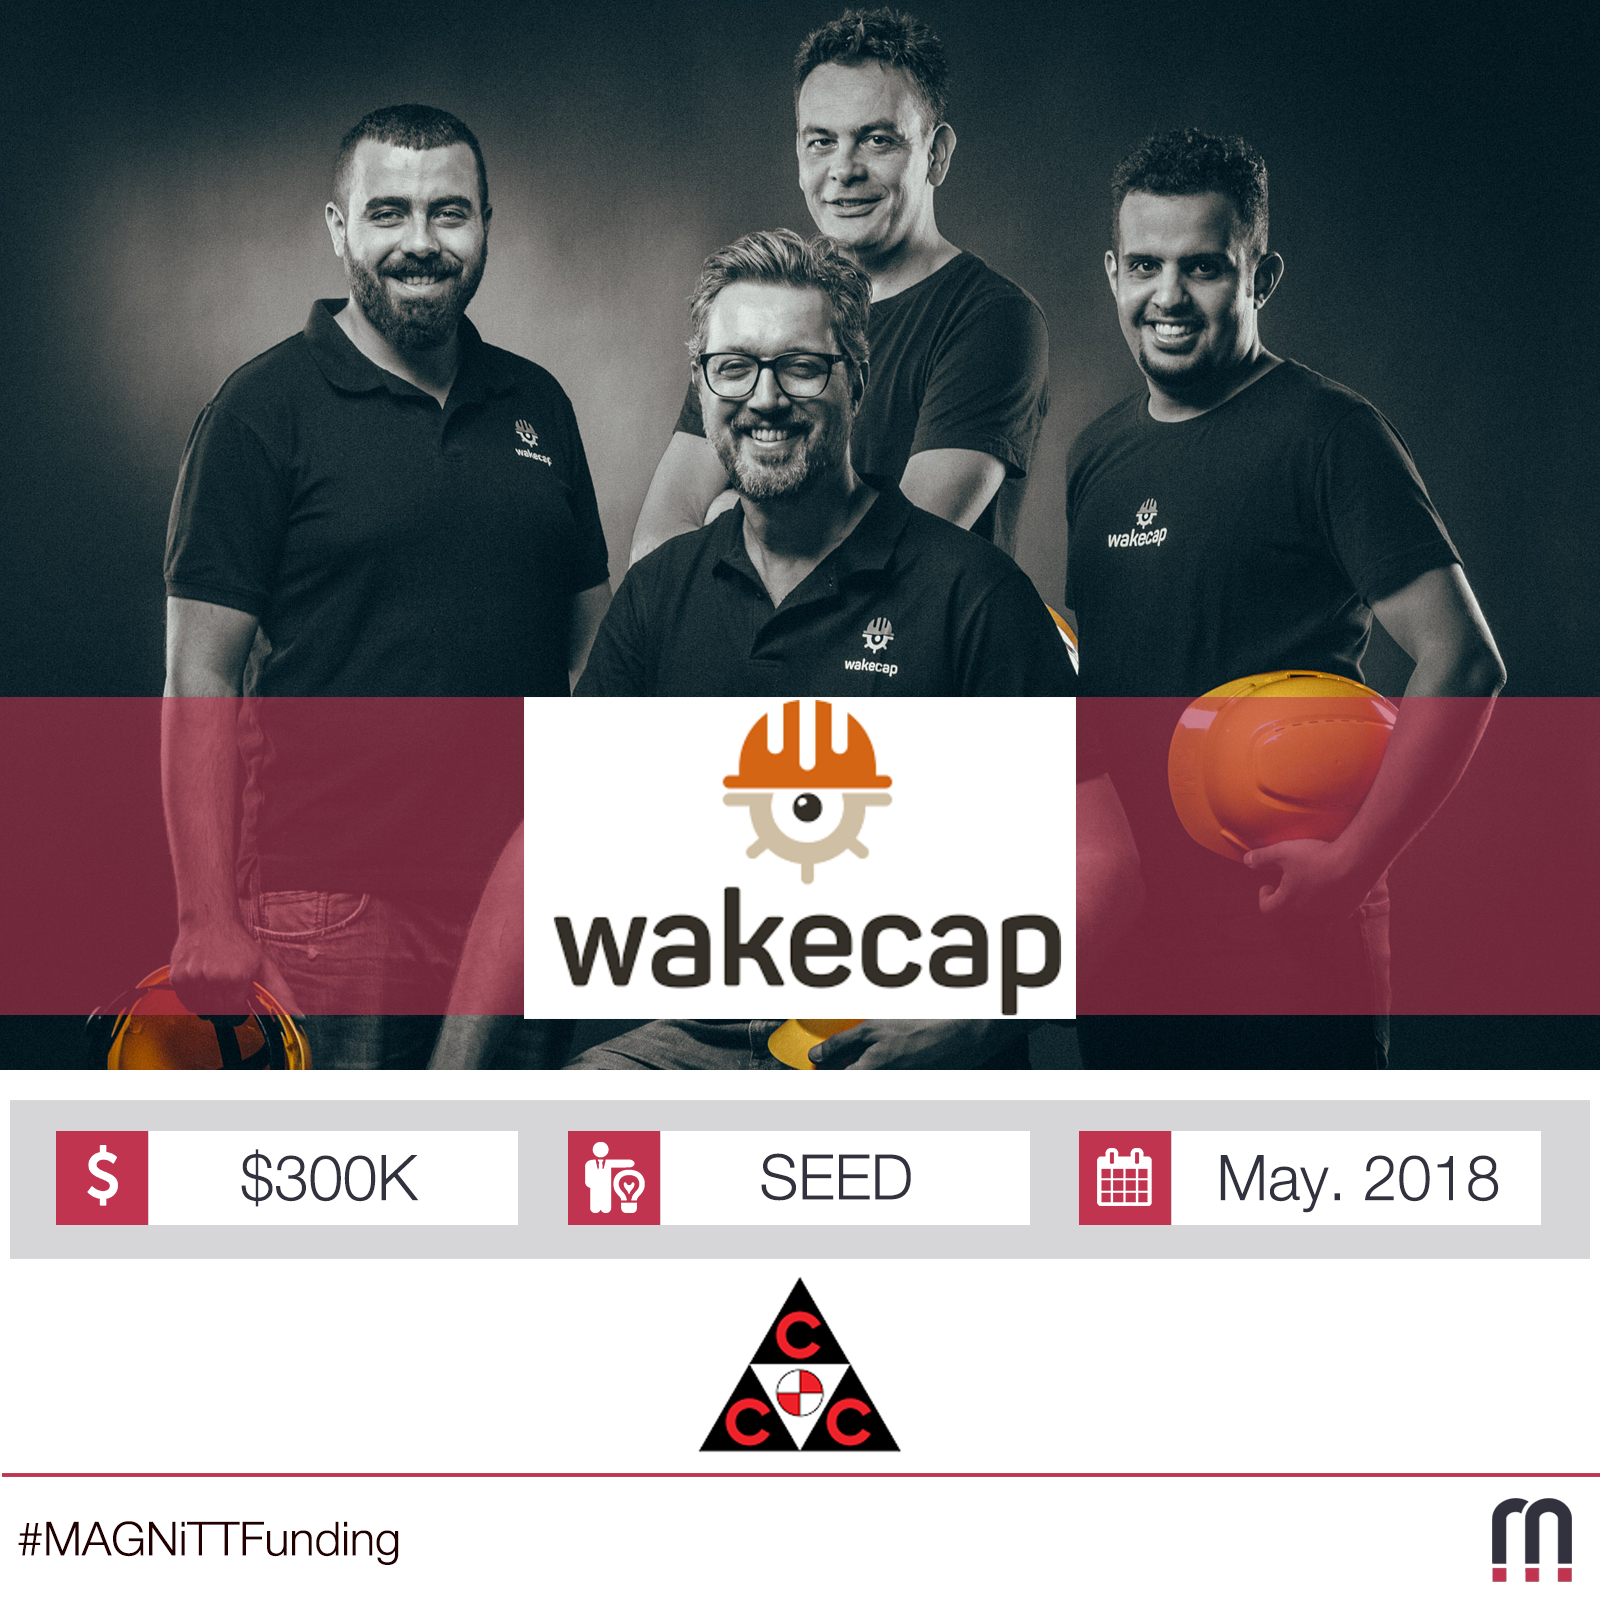 The Middle-East Construction Giant (CCC) and WakeCap Technologies Inc. Prepare Strategic Partnership to Empower Construction Workers with Innovative IoT Technology